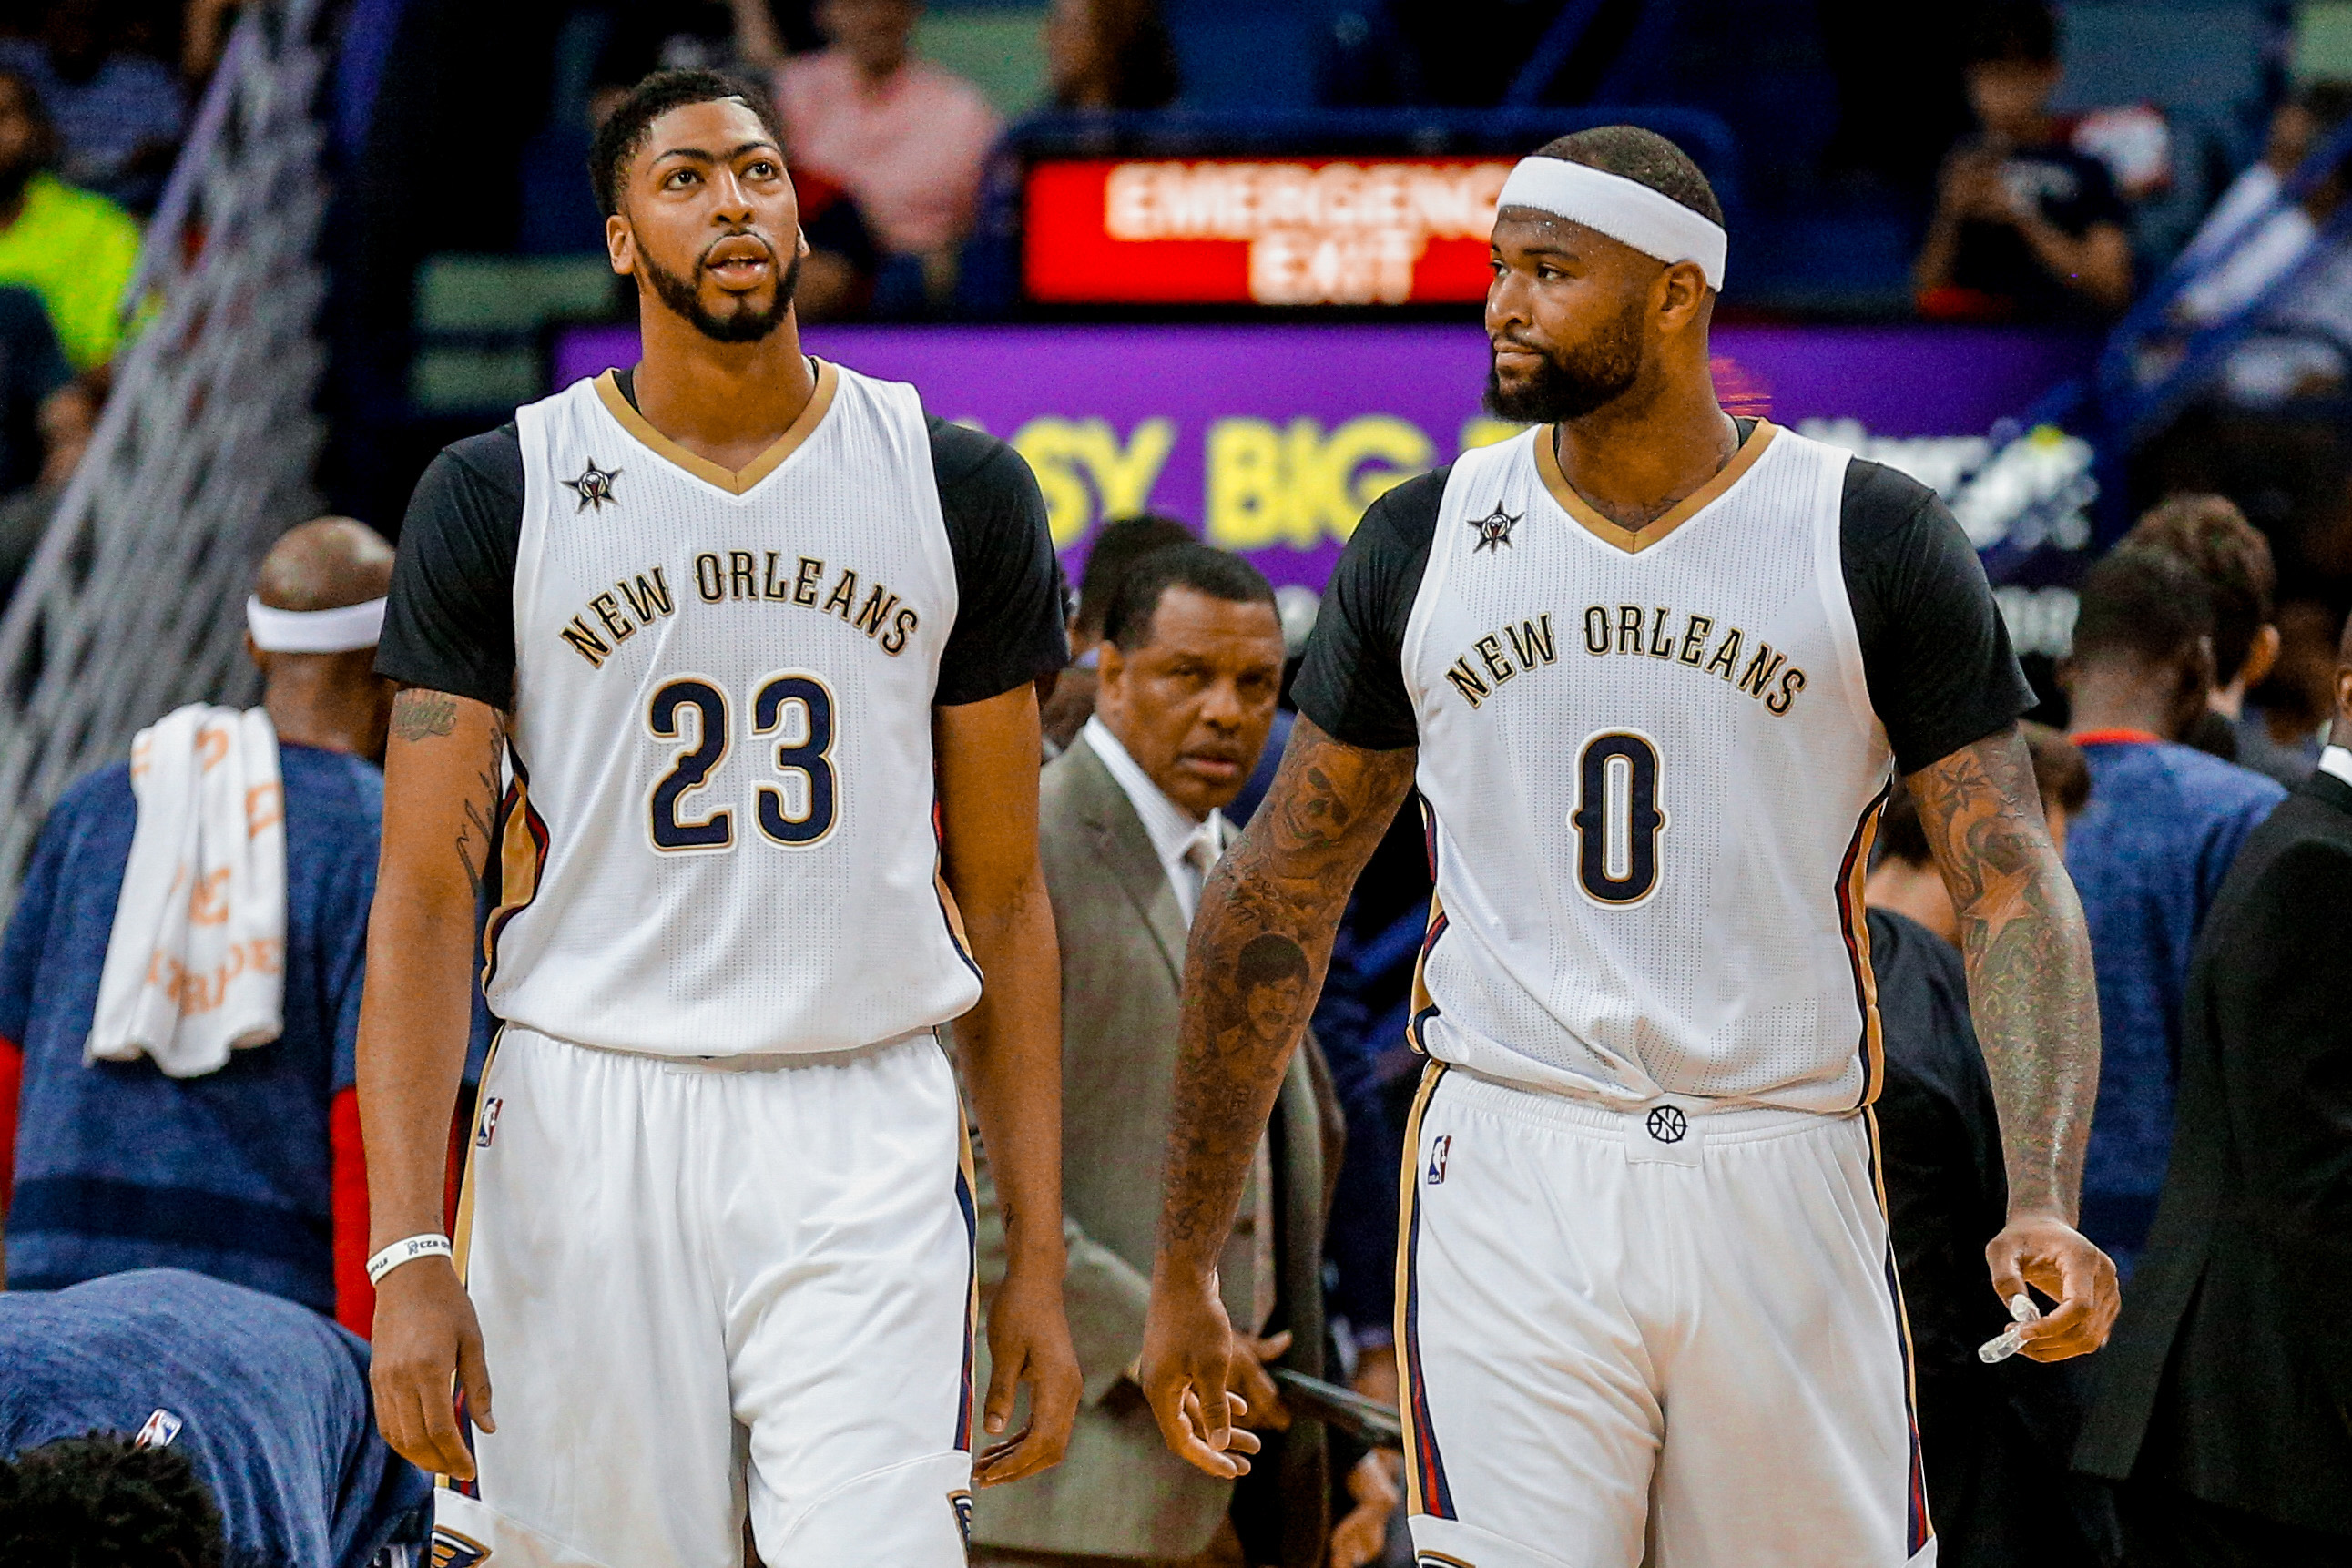 9983646-nba-sacramento-kings-at-new-orleans-pelicans